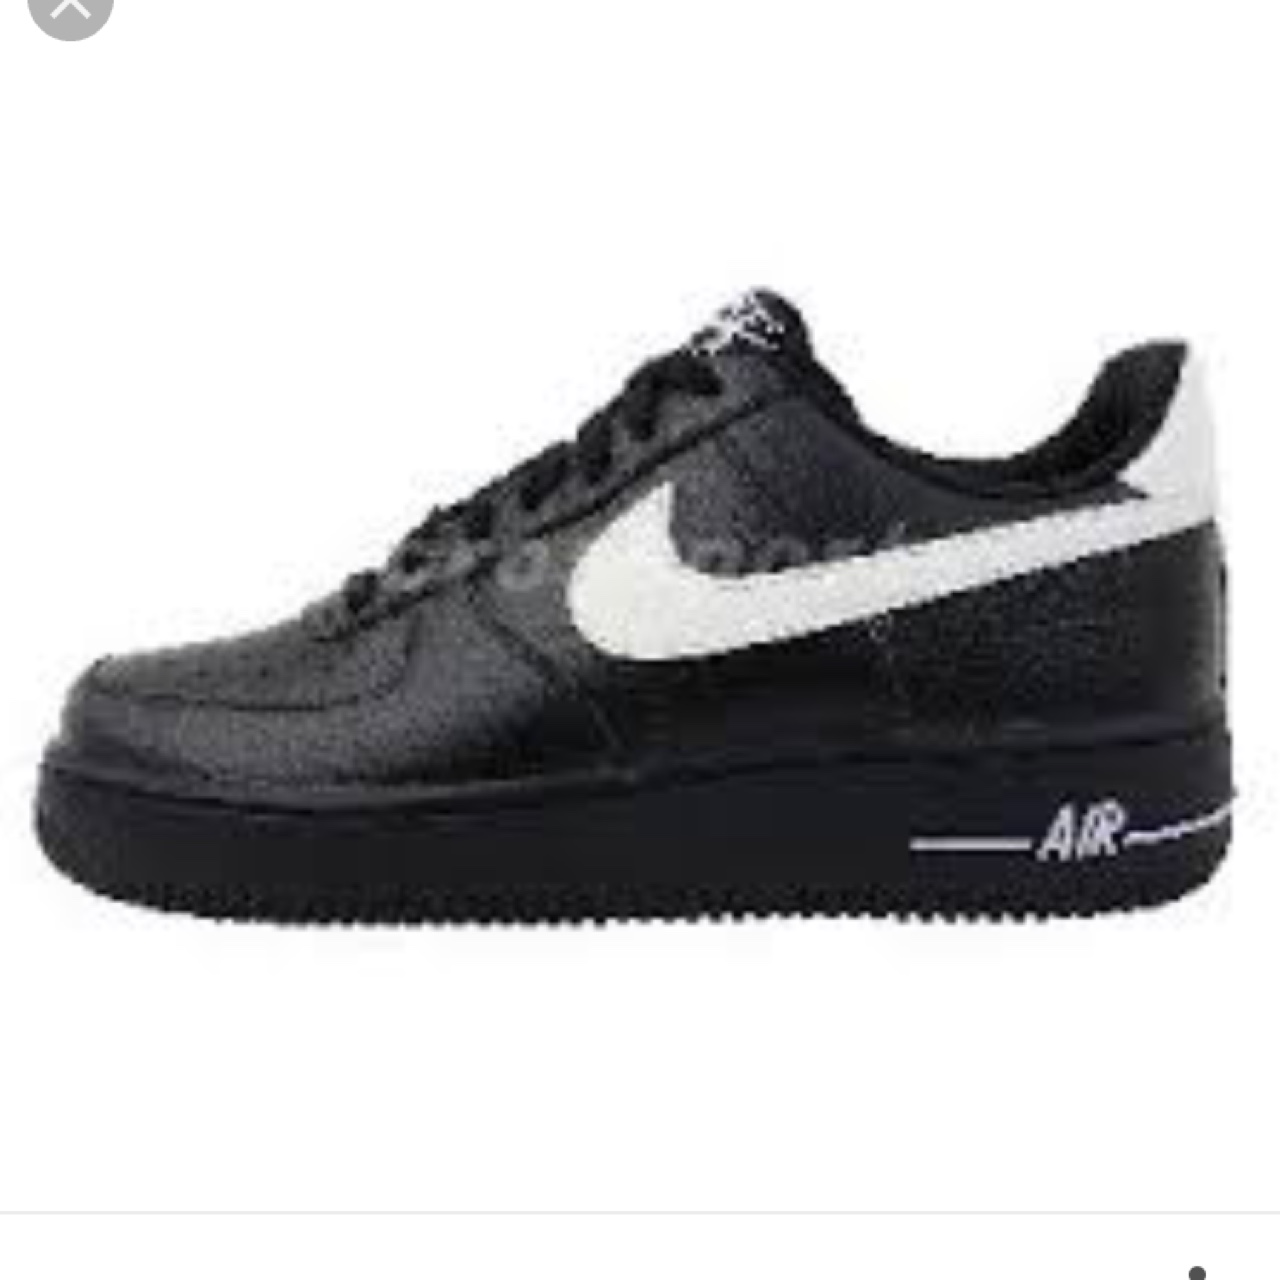 WANT TO BUY black nike airforce 1s with